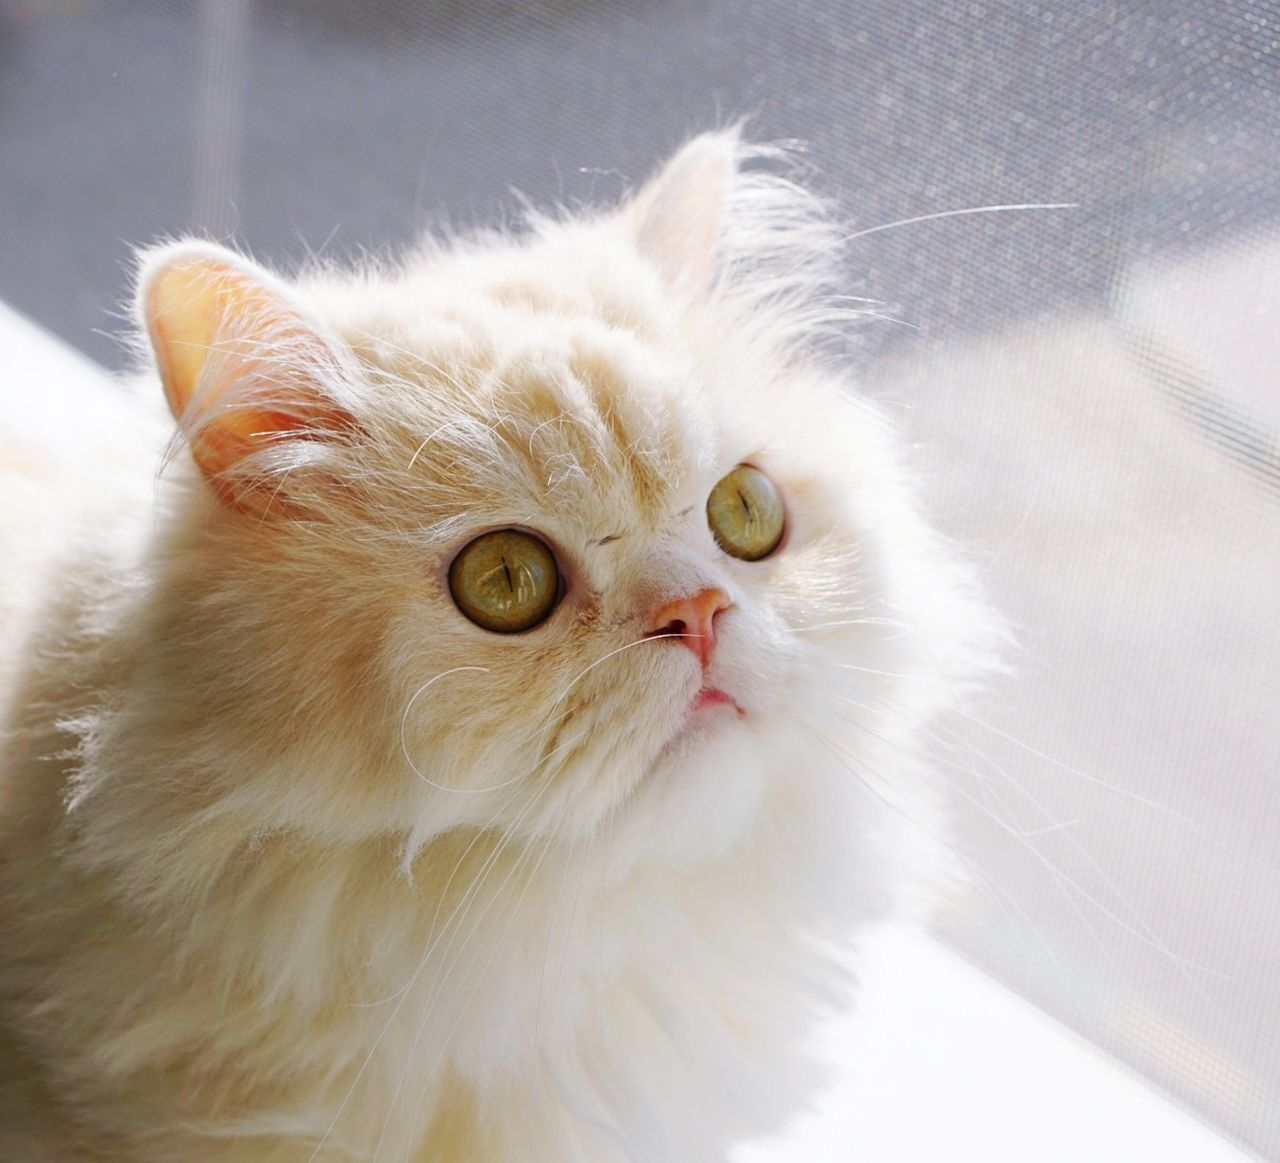 domestic cat, feline, pets, domestic animals, animal themes, mammal, whisker, one animal, cat, indoors, no people, portrait, close-up, persian cat, day